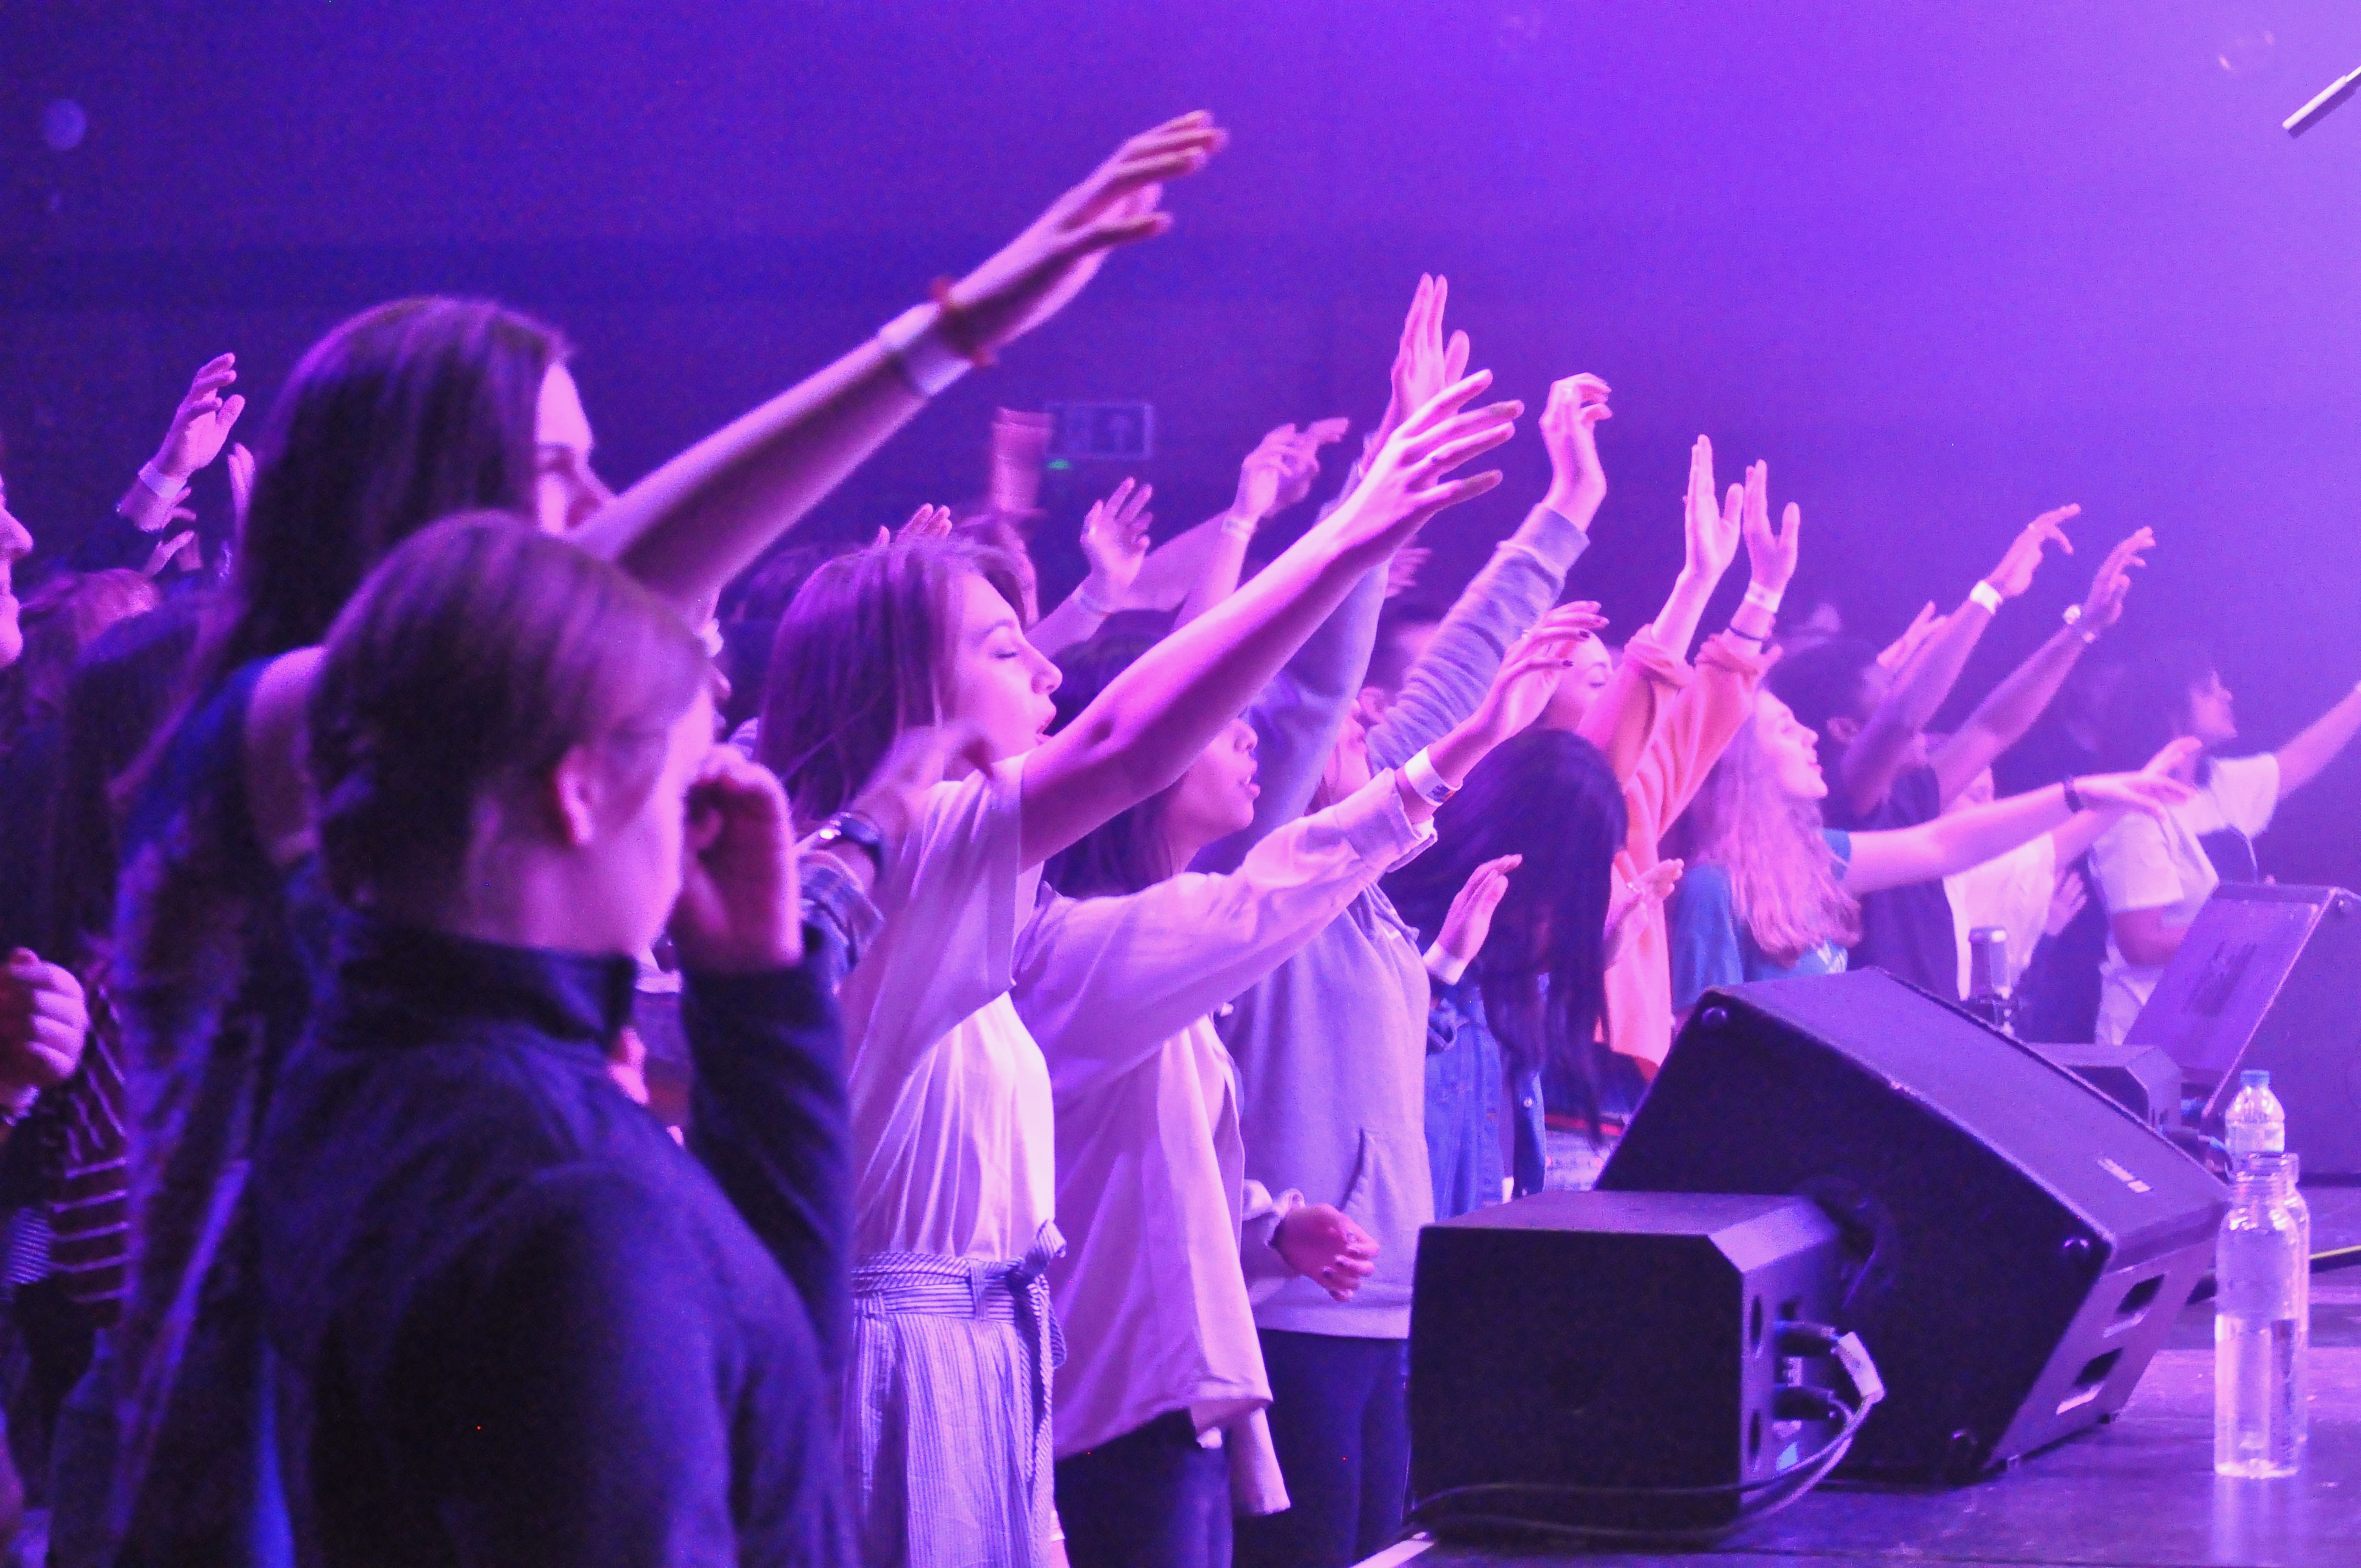 Worship at Empower Conference